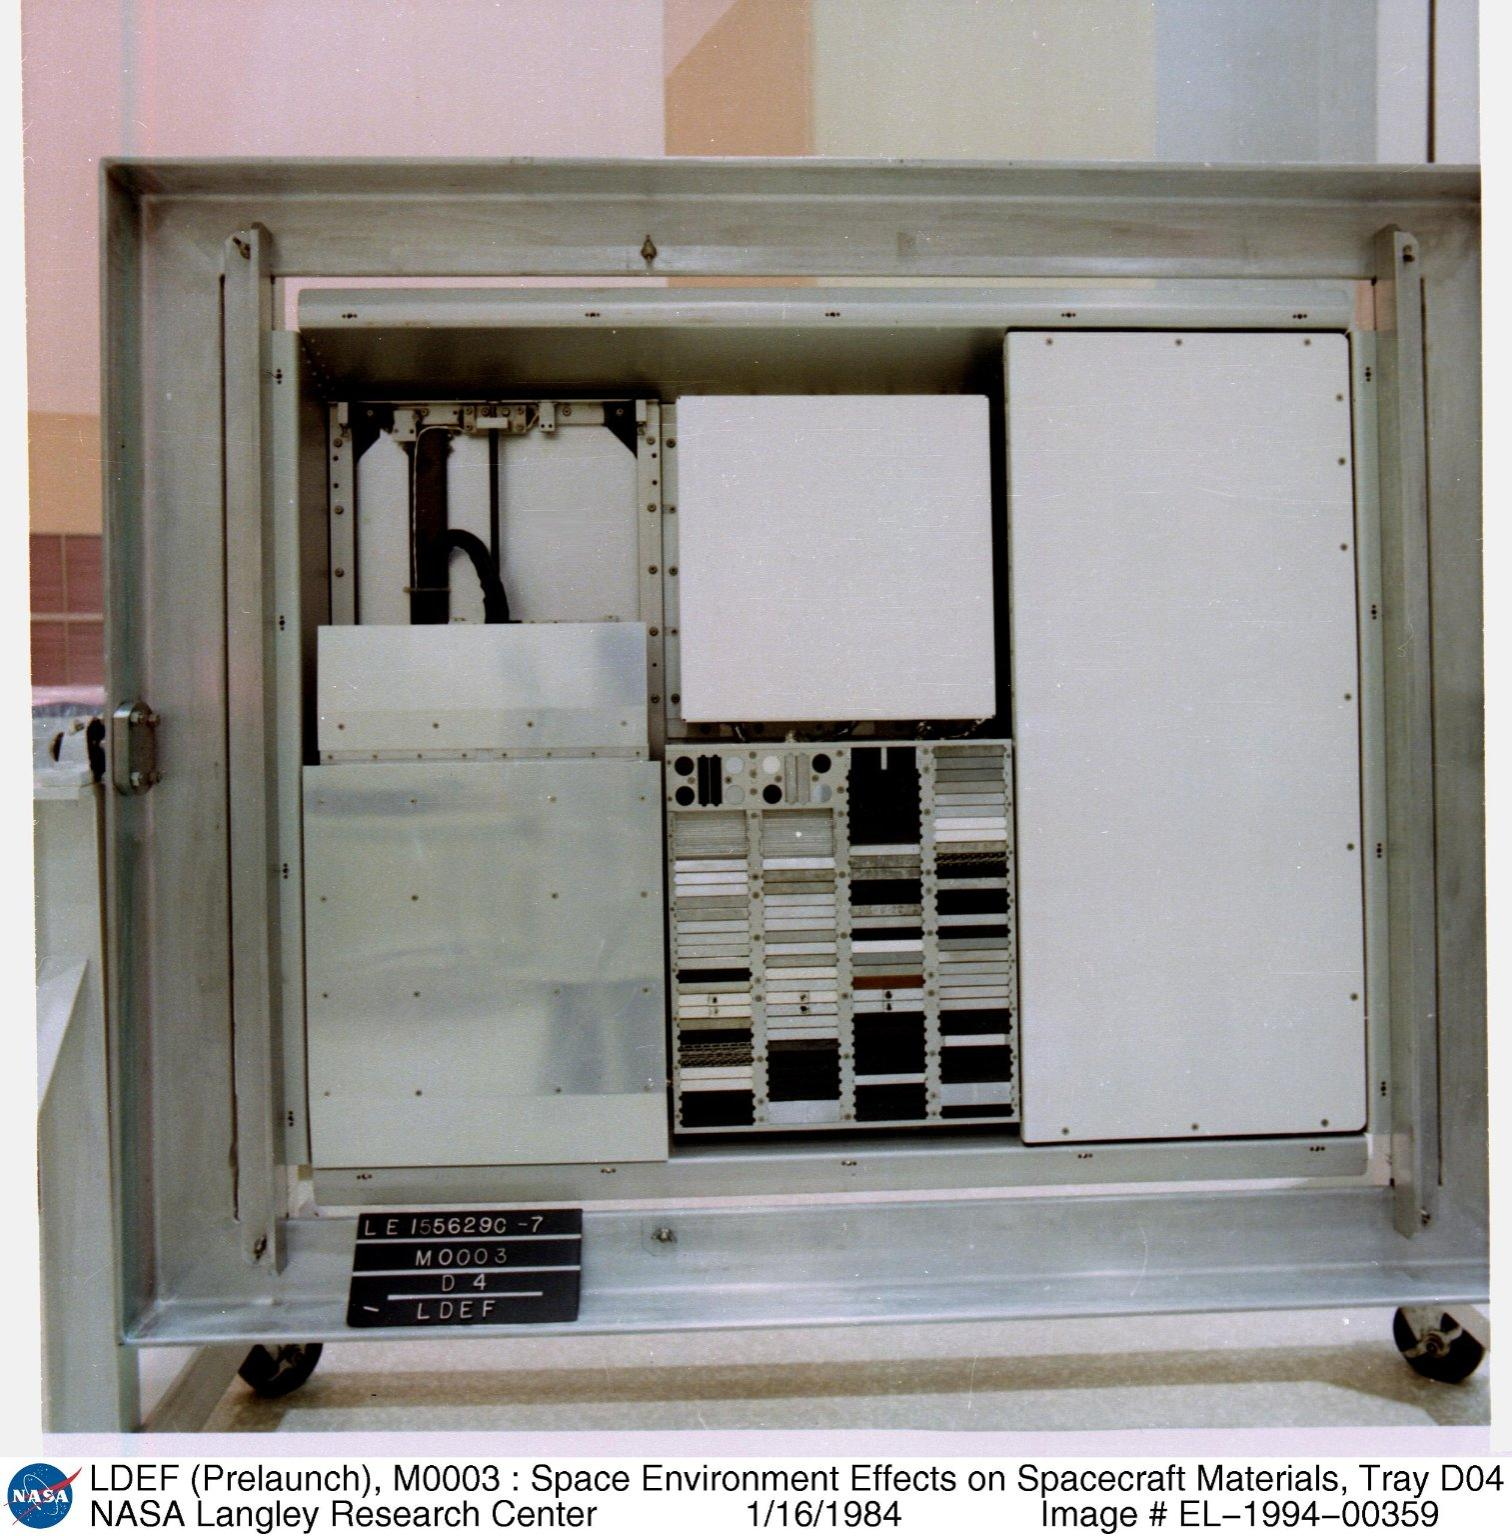 LDEF (Prelaunch), M0003 : Space Environment Effects on Spacecraft Materials, Tray D04